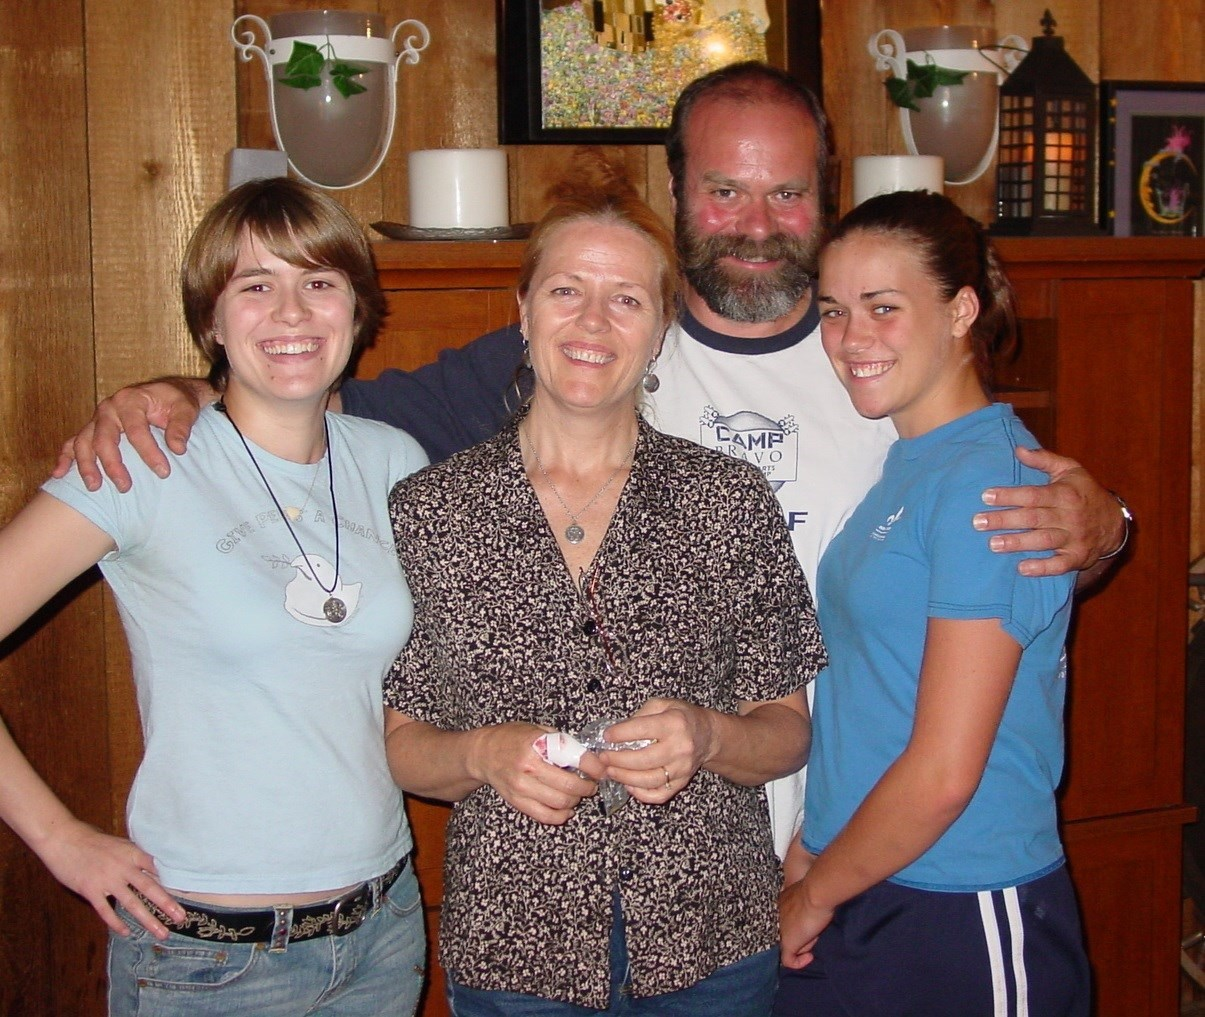 LewisFamily2006.  Some of the best people I know.